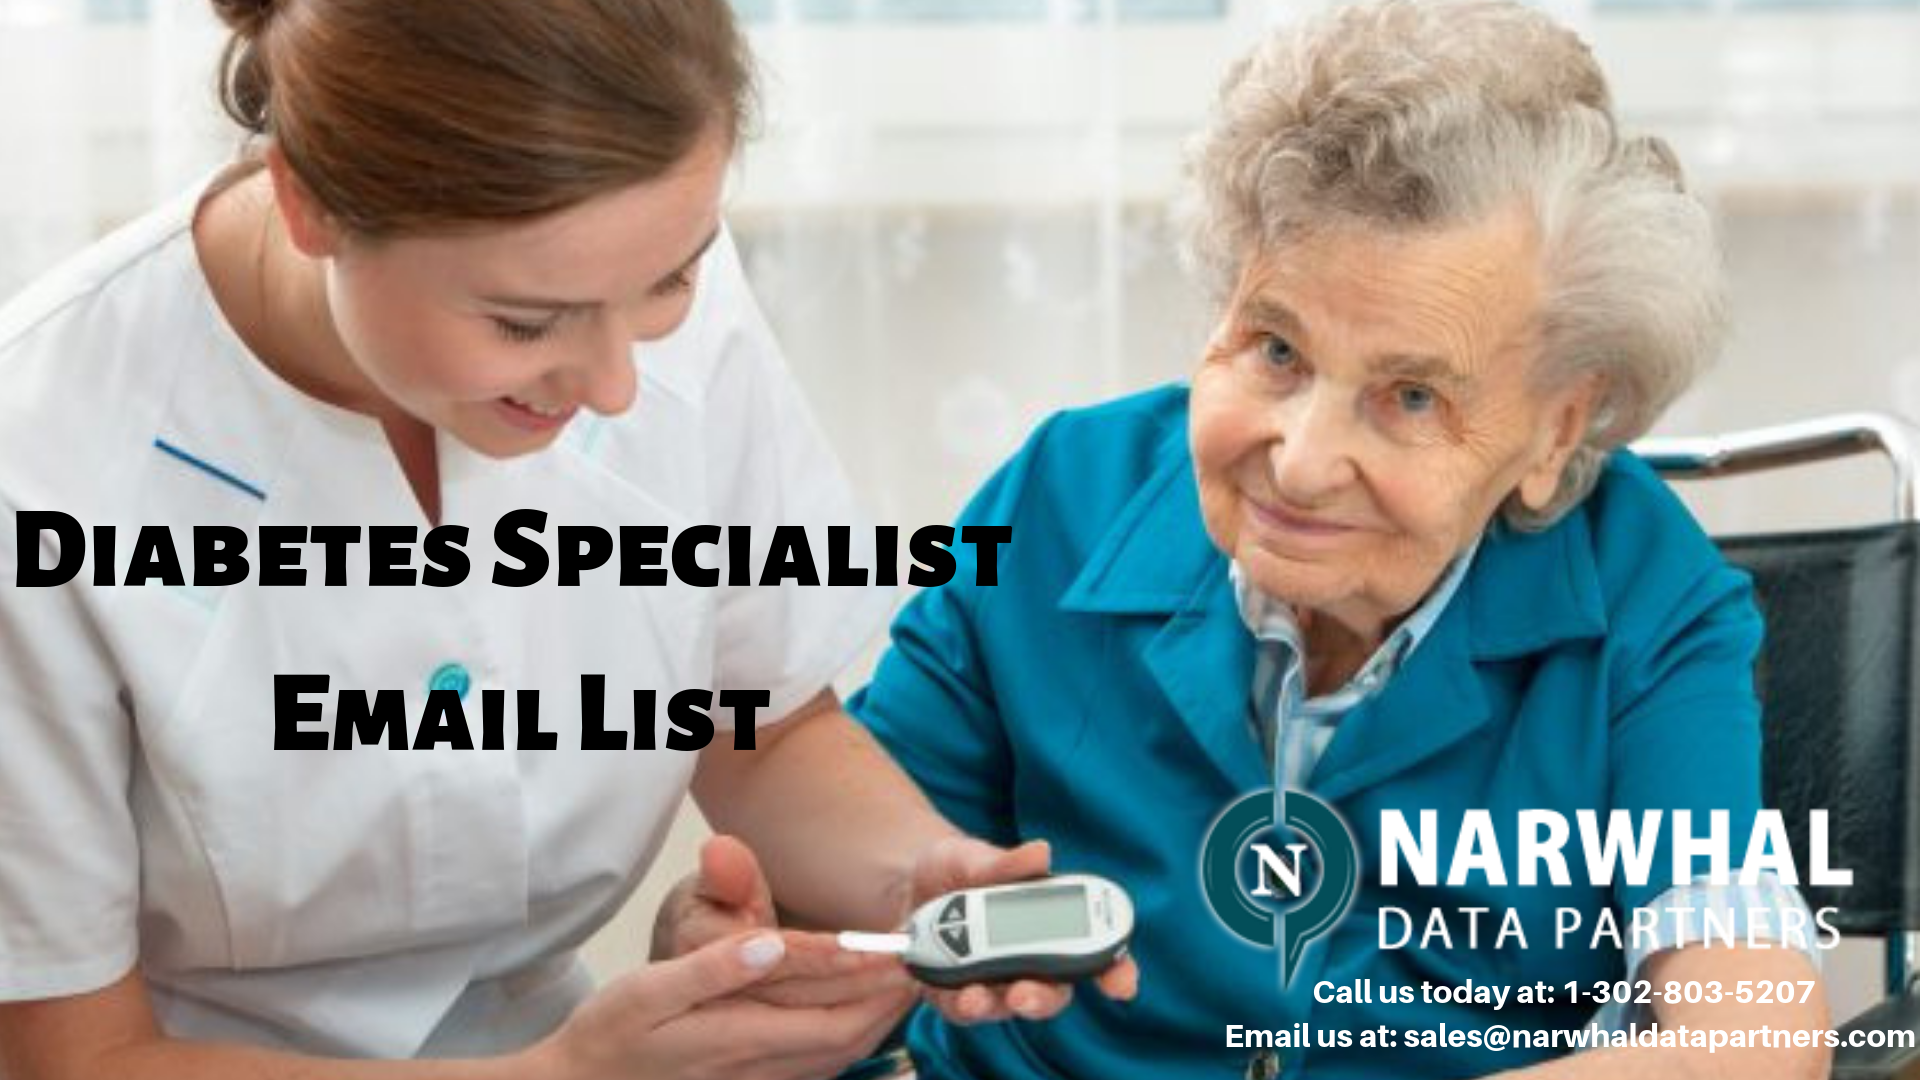 http://narwhaldatapartners.com/diabetes-specialist-email-list.html